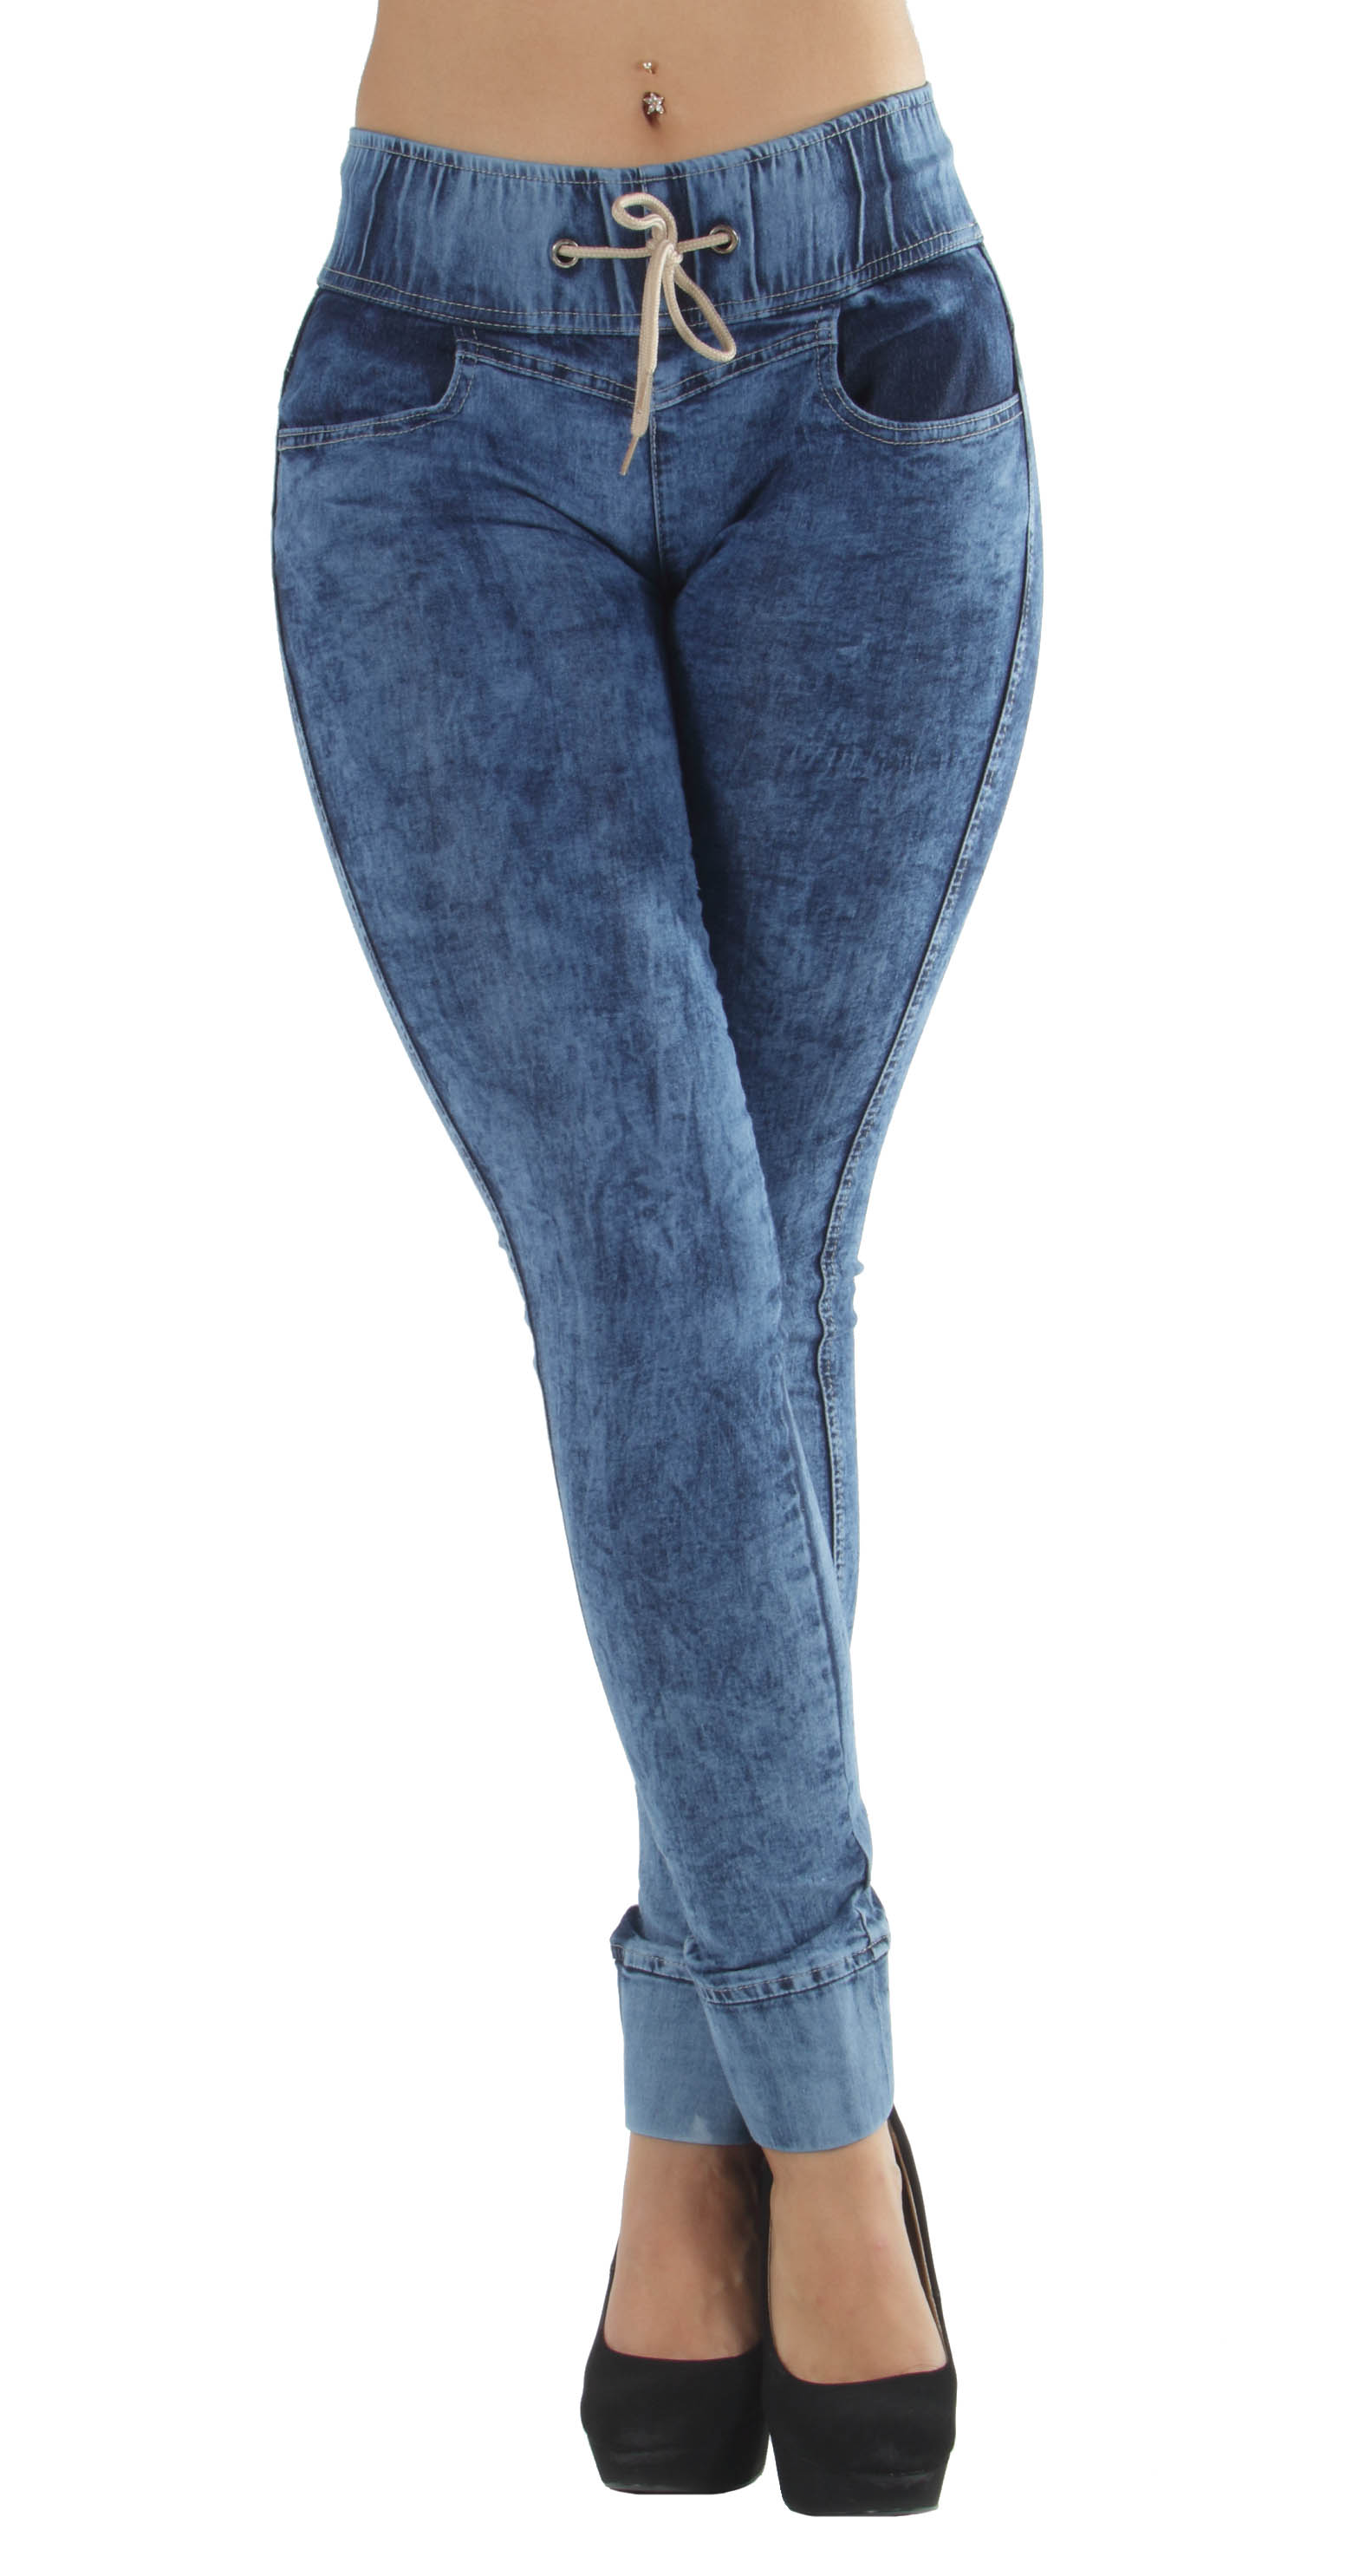 N967-Colombian-Design-Butt-Lifting-Levanta-Cola-Elastic-Waist-Skinny-Jeans